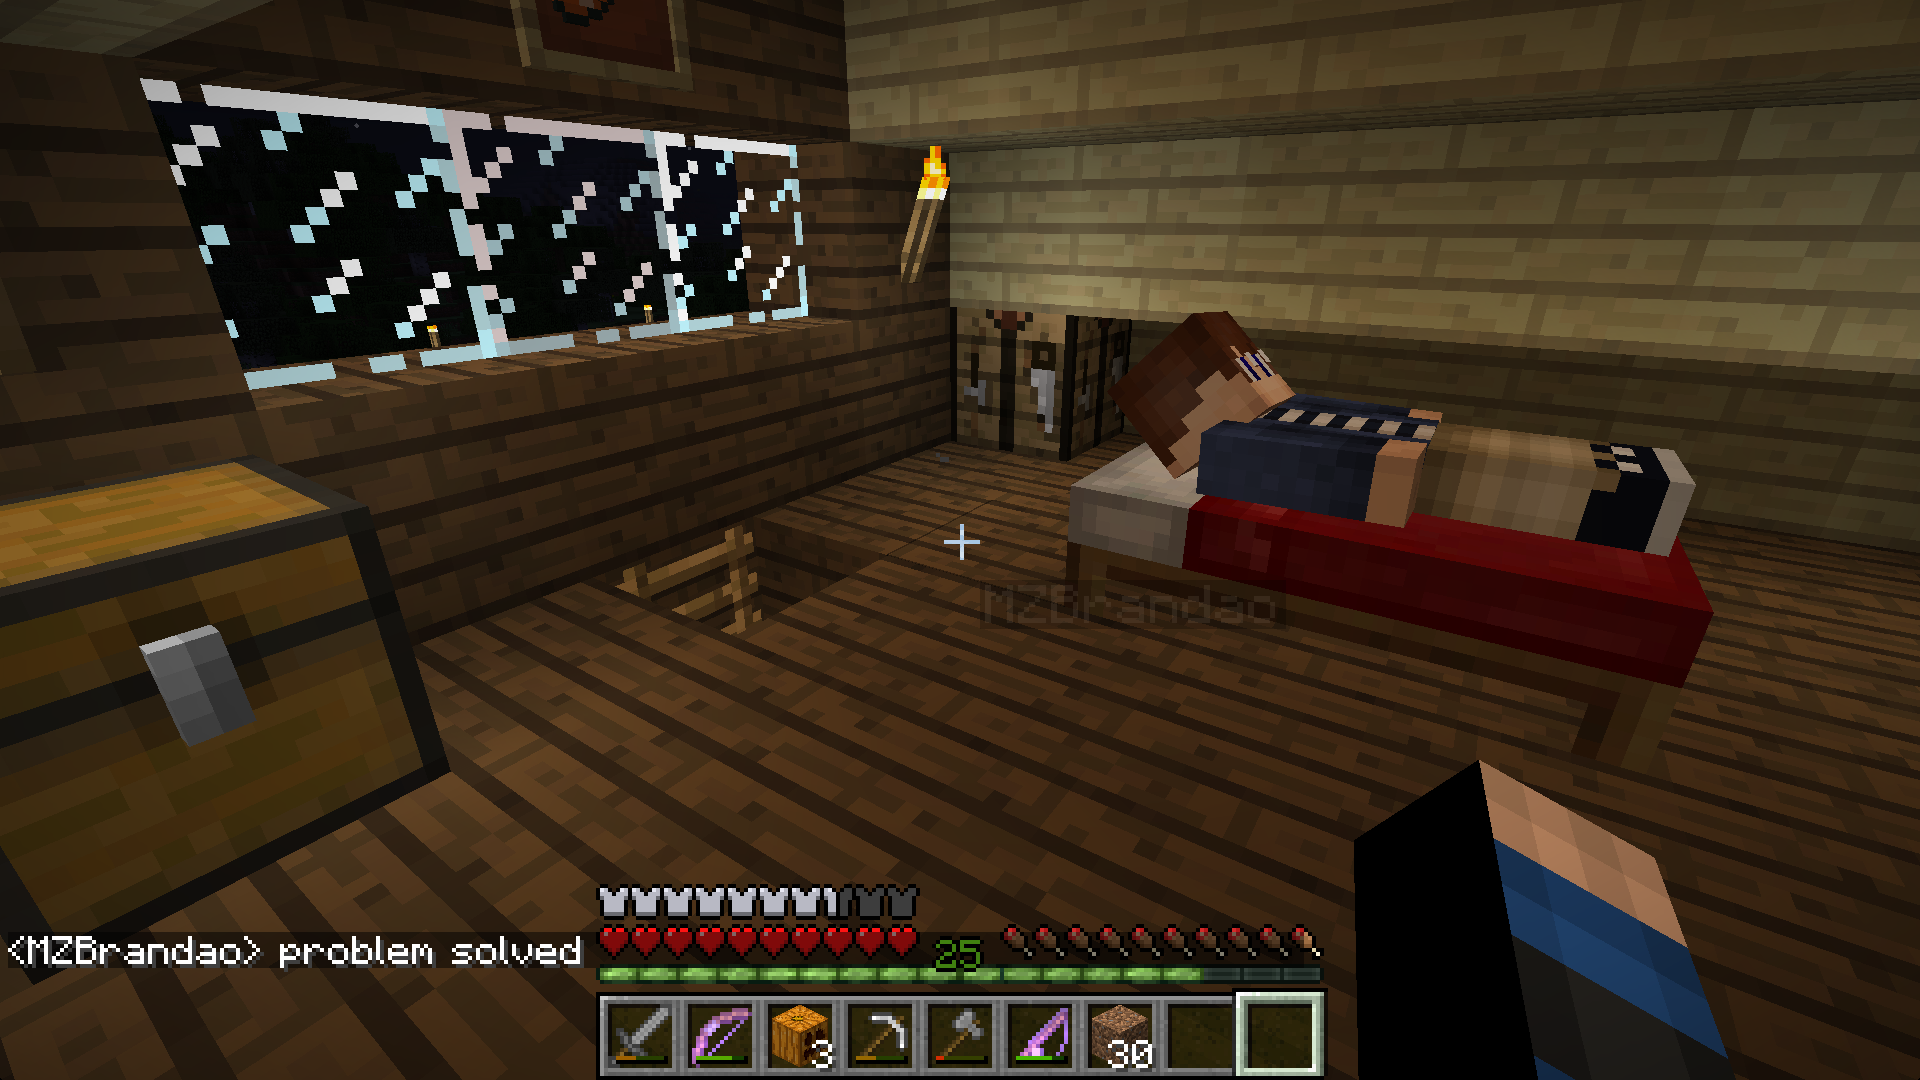 Why Toddlers Needs Lessons About >> Parenting Lessons from Minecraft - VillageQ